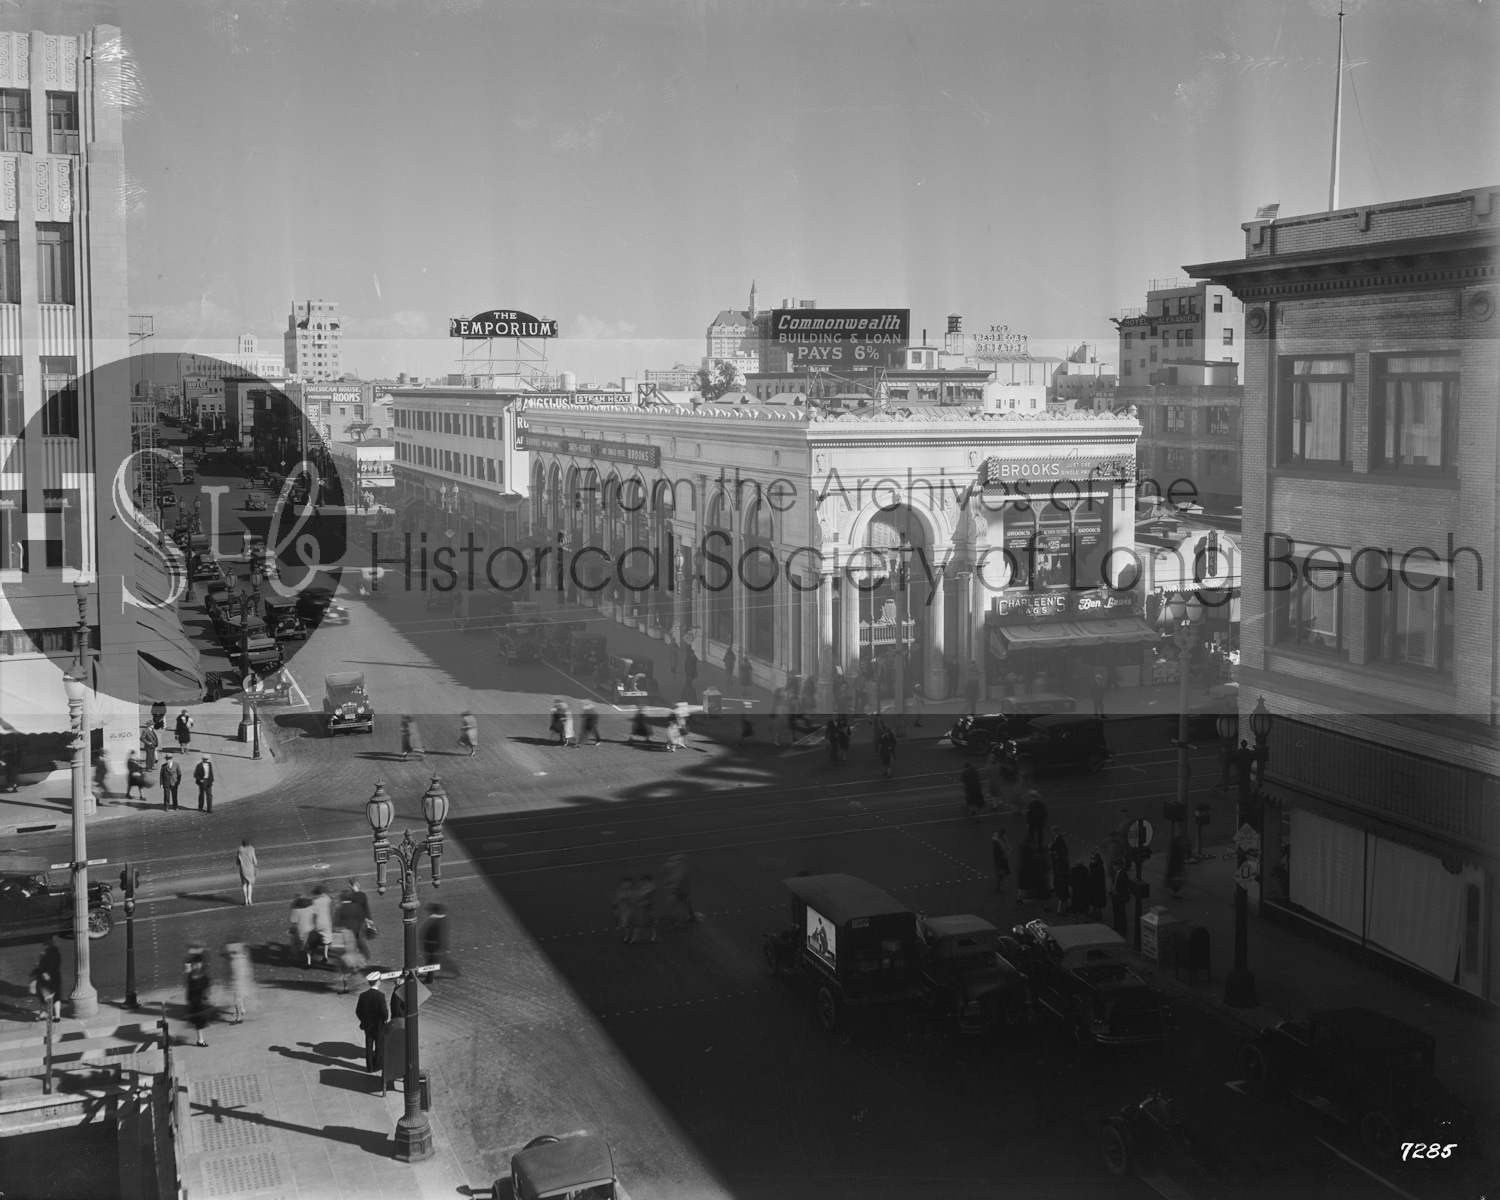 Historical society photo long beach streets and roads